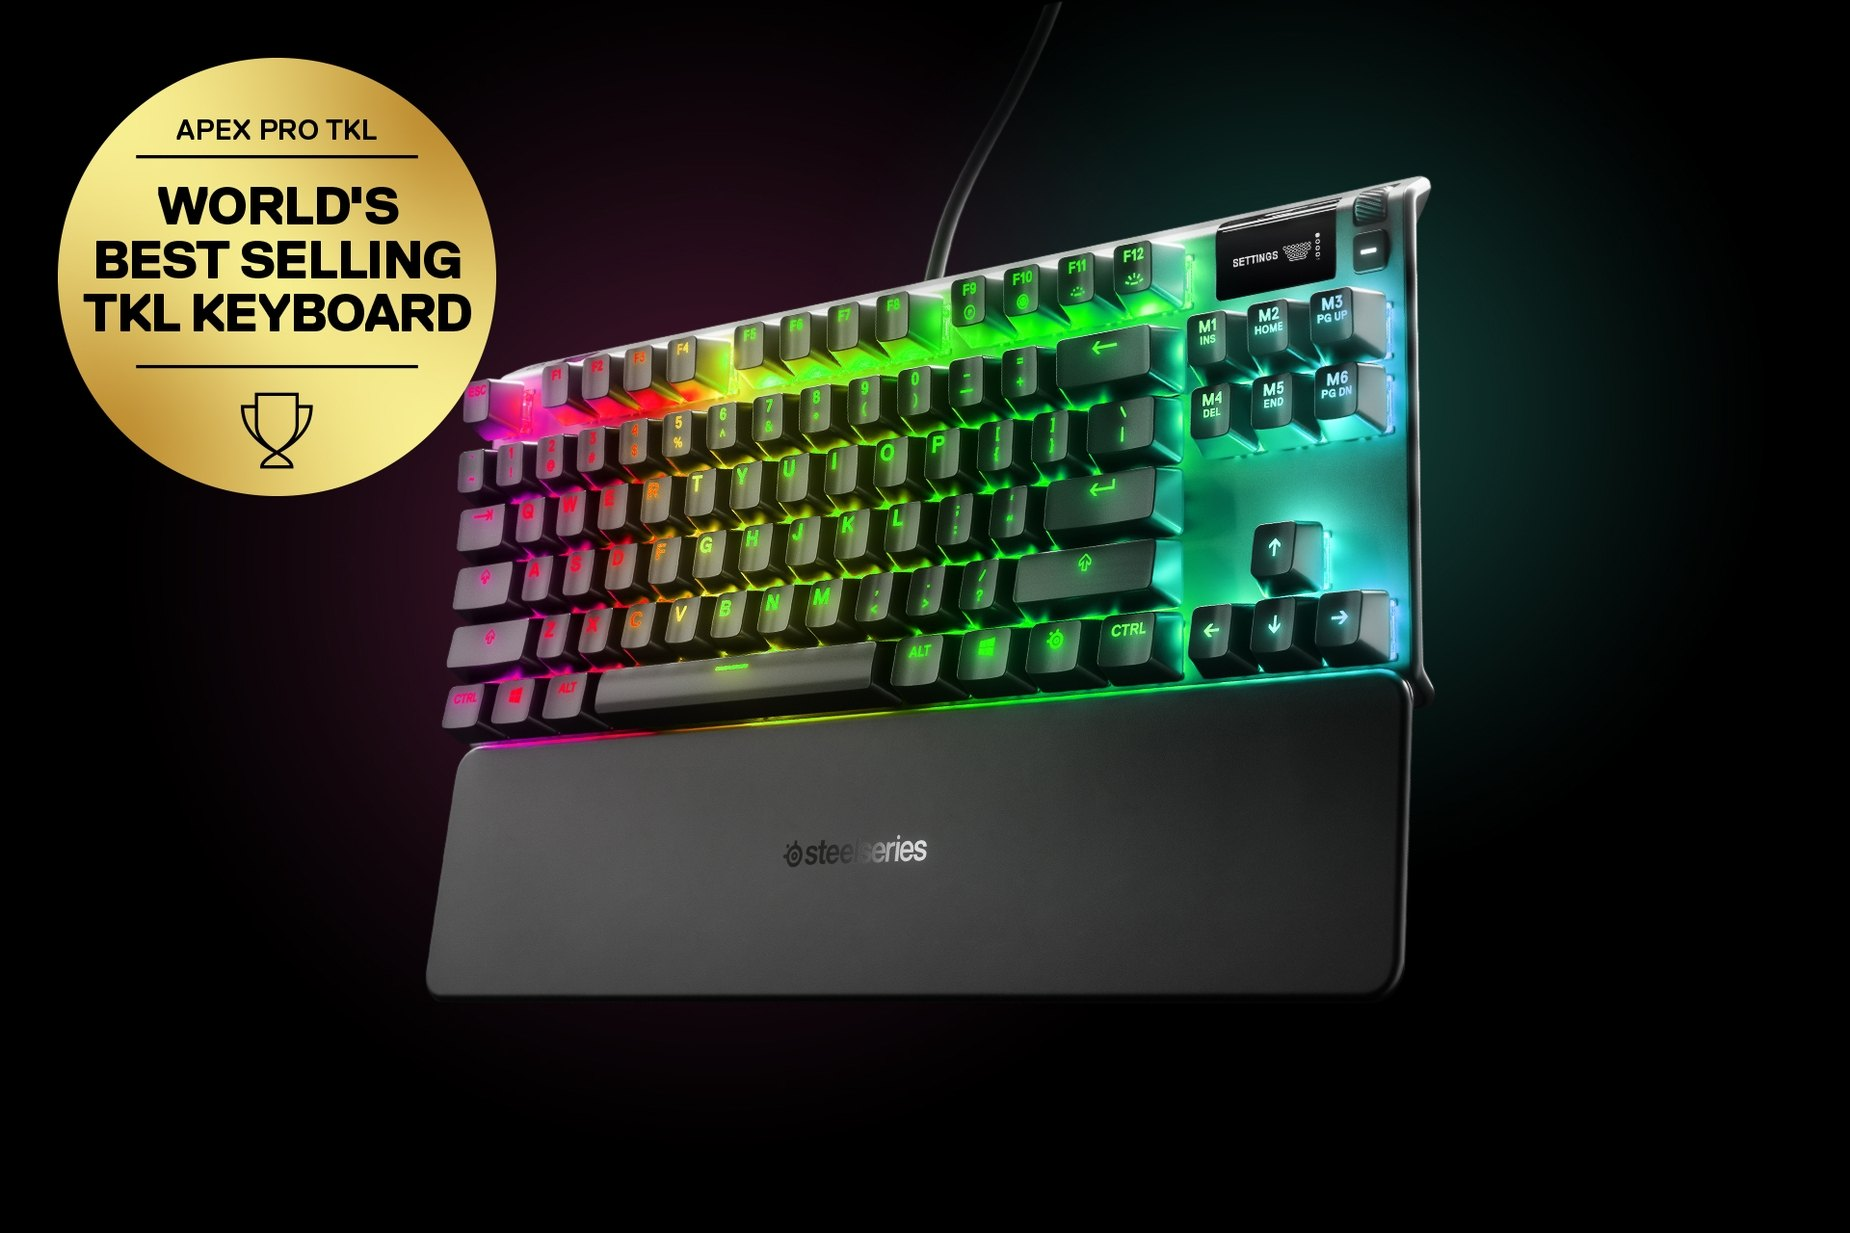 "German - Apex Pro TKL gaming keyboard with the illumination lit up on dark background, also shows the OLED screen and controls used to change settings, switch actuation, and adjust audio. Keyboard has gold award floating next to it with text ""World's best selling TKL Keyboard""."